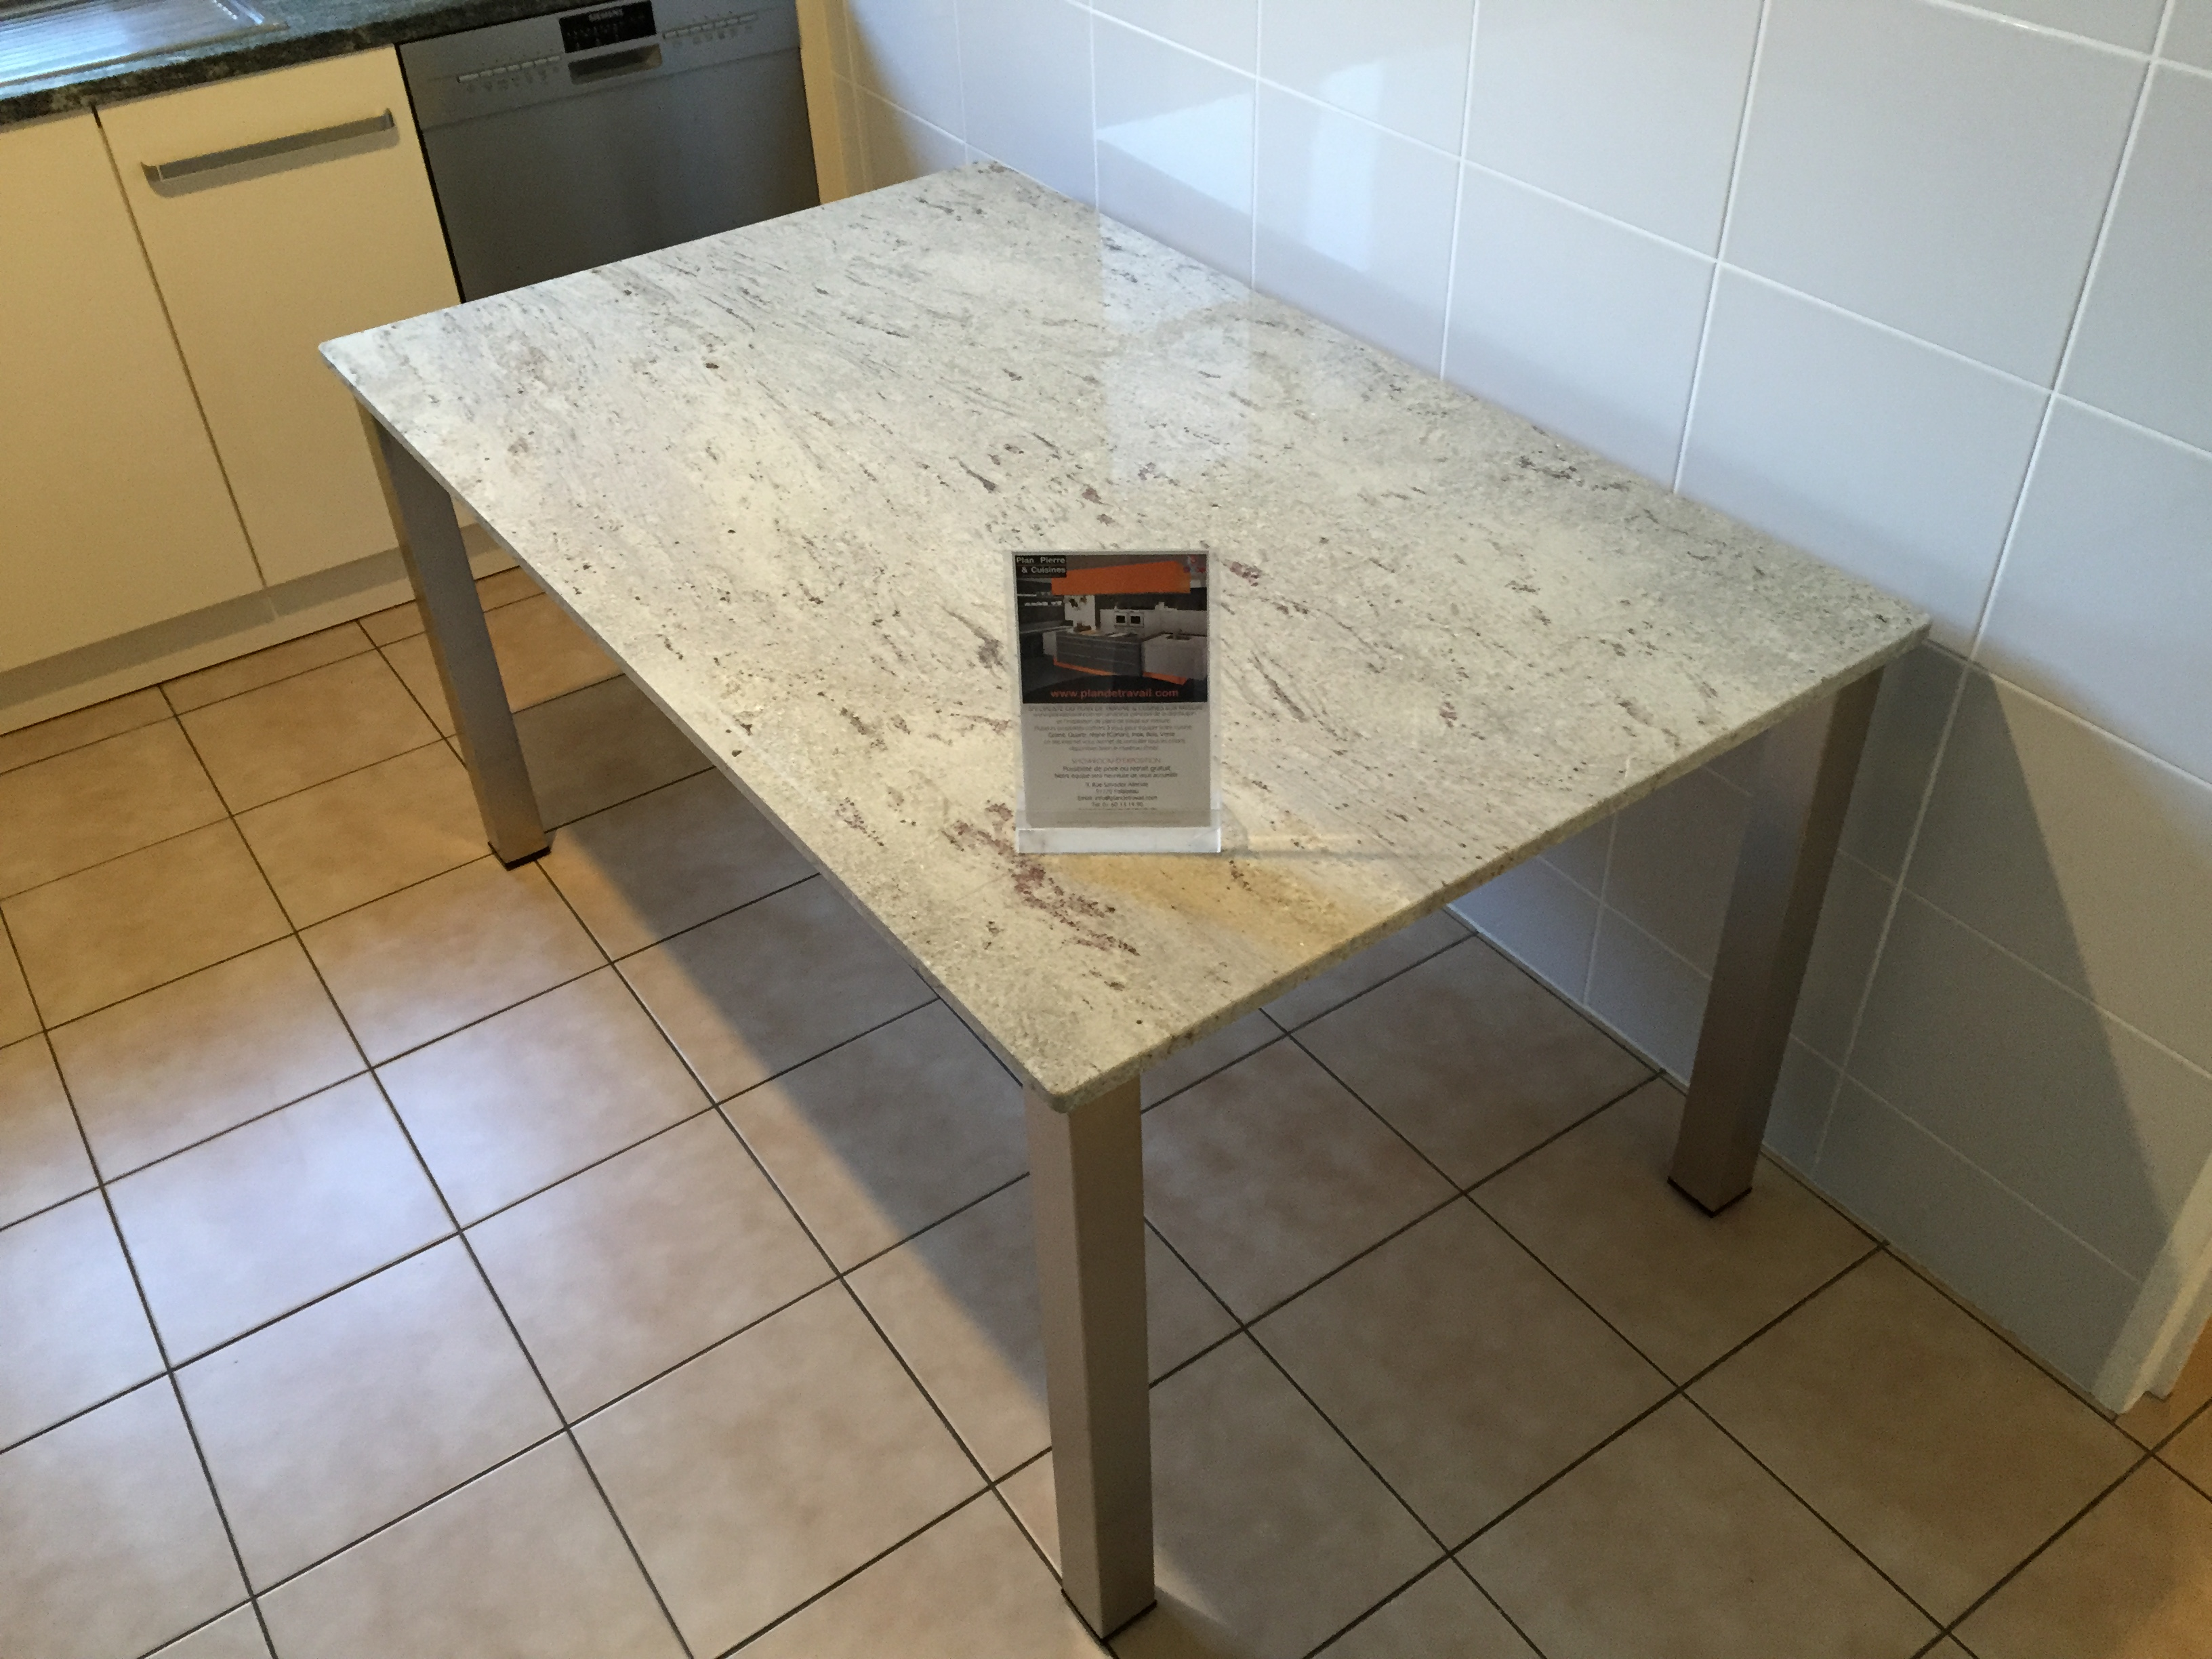 Plan de travail granit quartz table en mabre paris essonne table - Plateau de table en granit ...